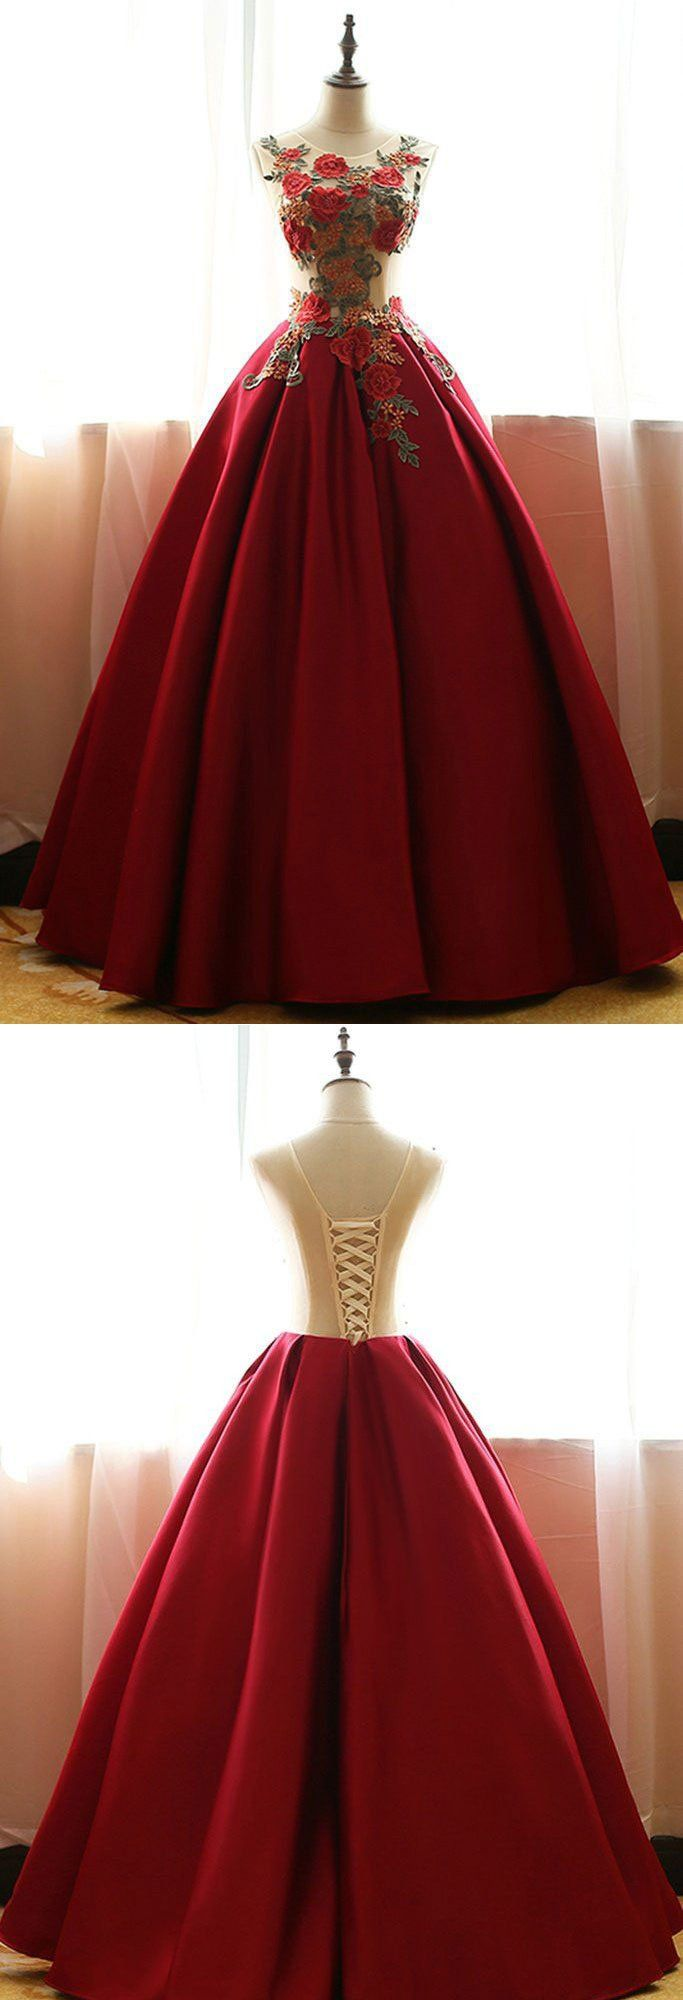 Red Quinceanera Dresses,Satin Prom Dresses With Flowers,Ball Gown Prom Dresses,Rose Applique Prom Gown,A-line Evening Dress,long prom dresses,HS167